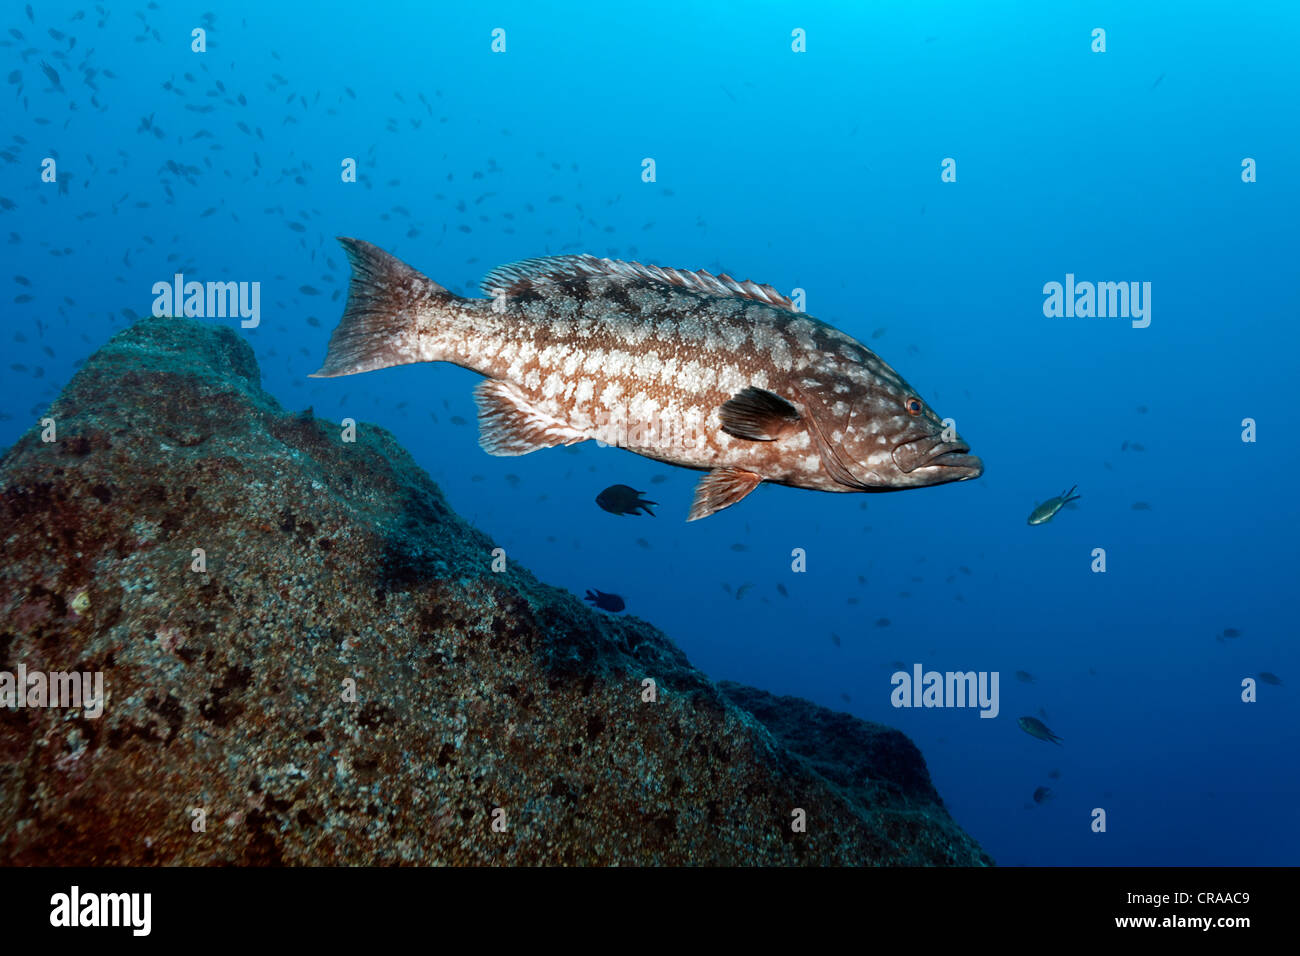 Atlantic Island Grouper or Comb Grouper (Mycteroperca fusca), rocky reef, Madeira, Portugal, Europe, Atlantic Ocean - Stock Image